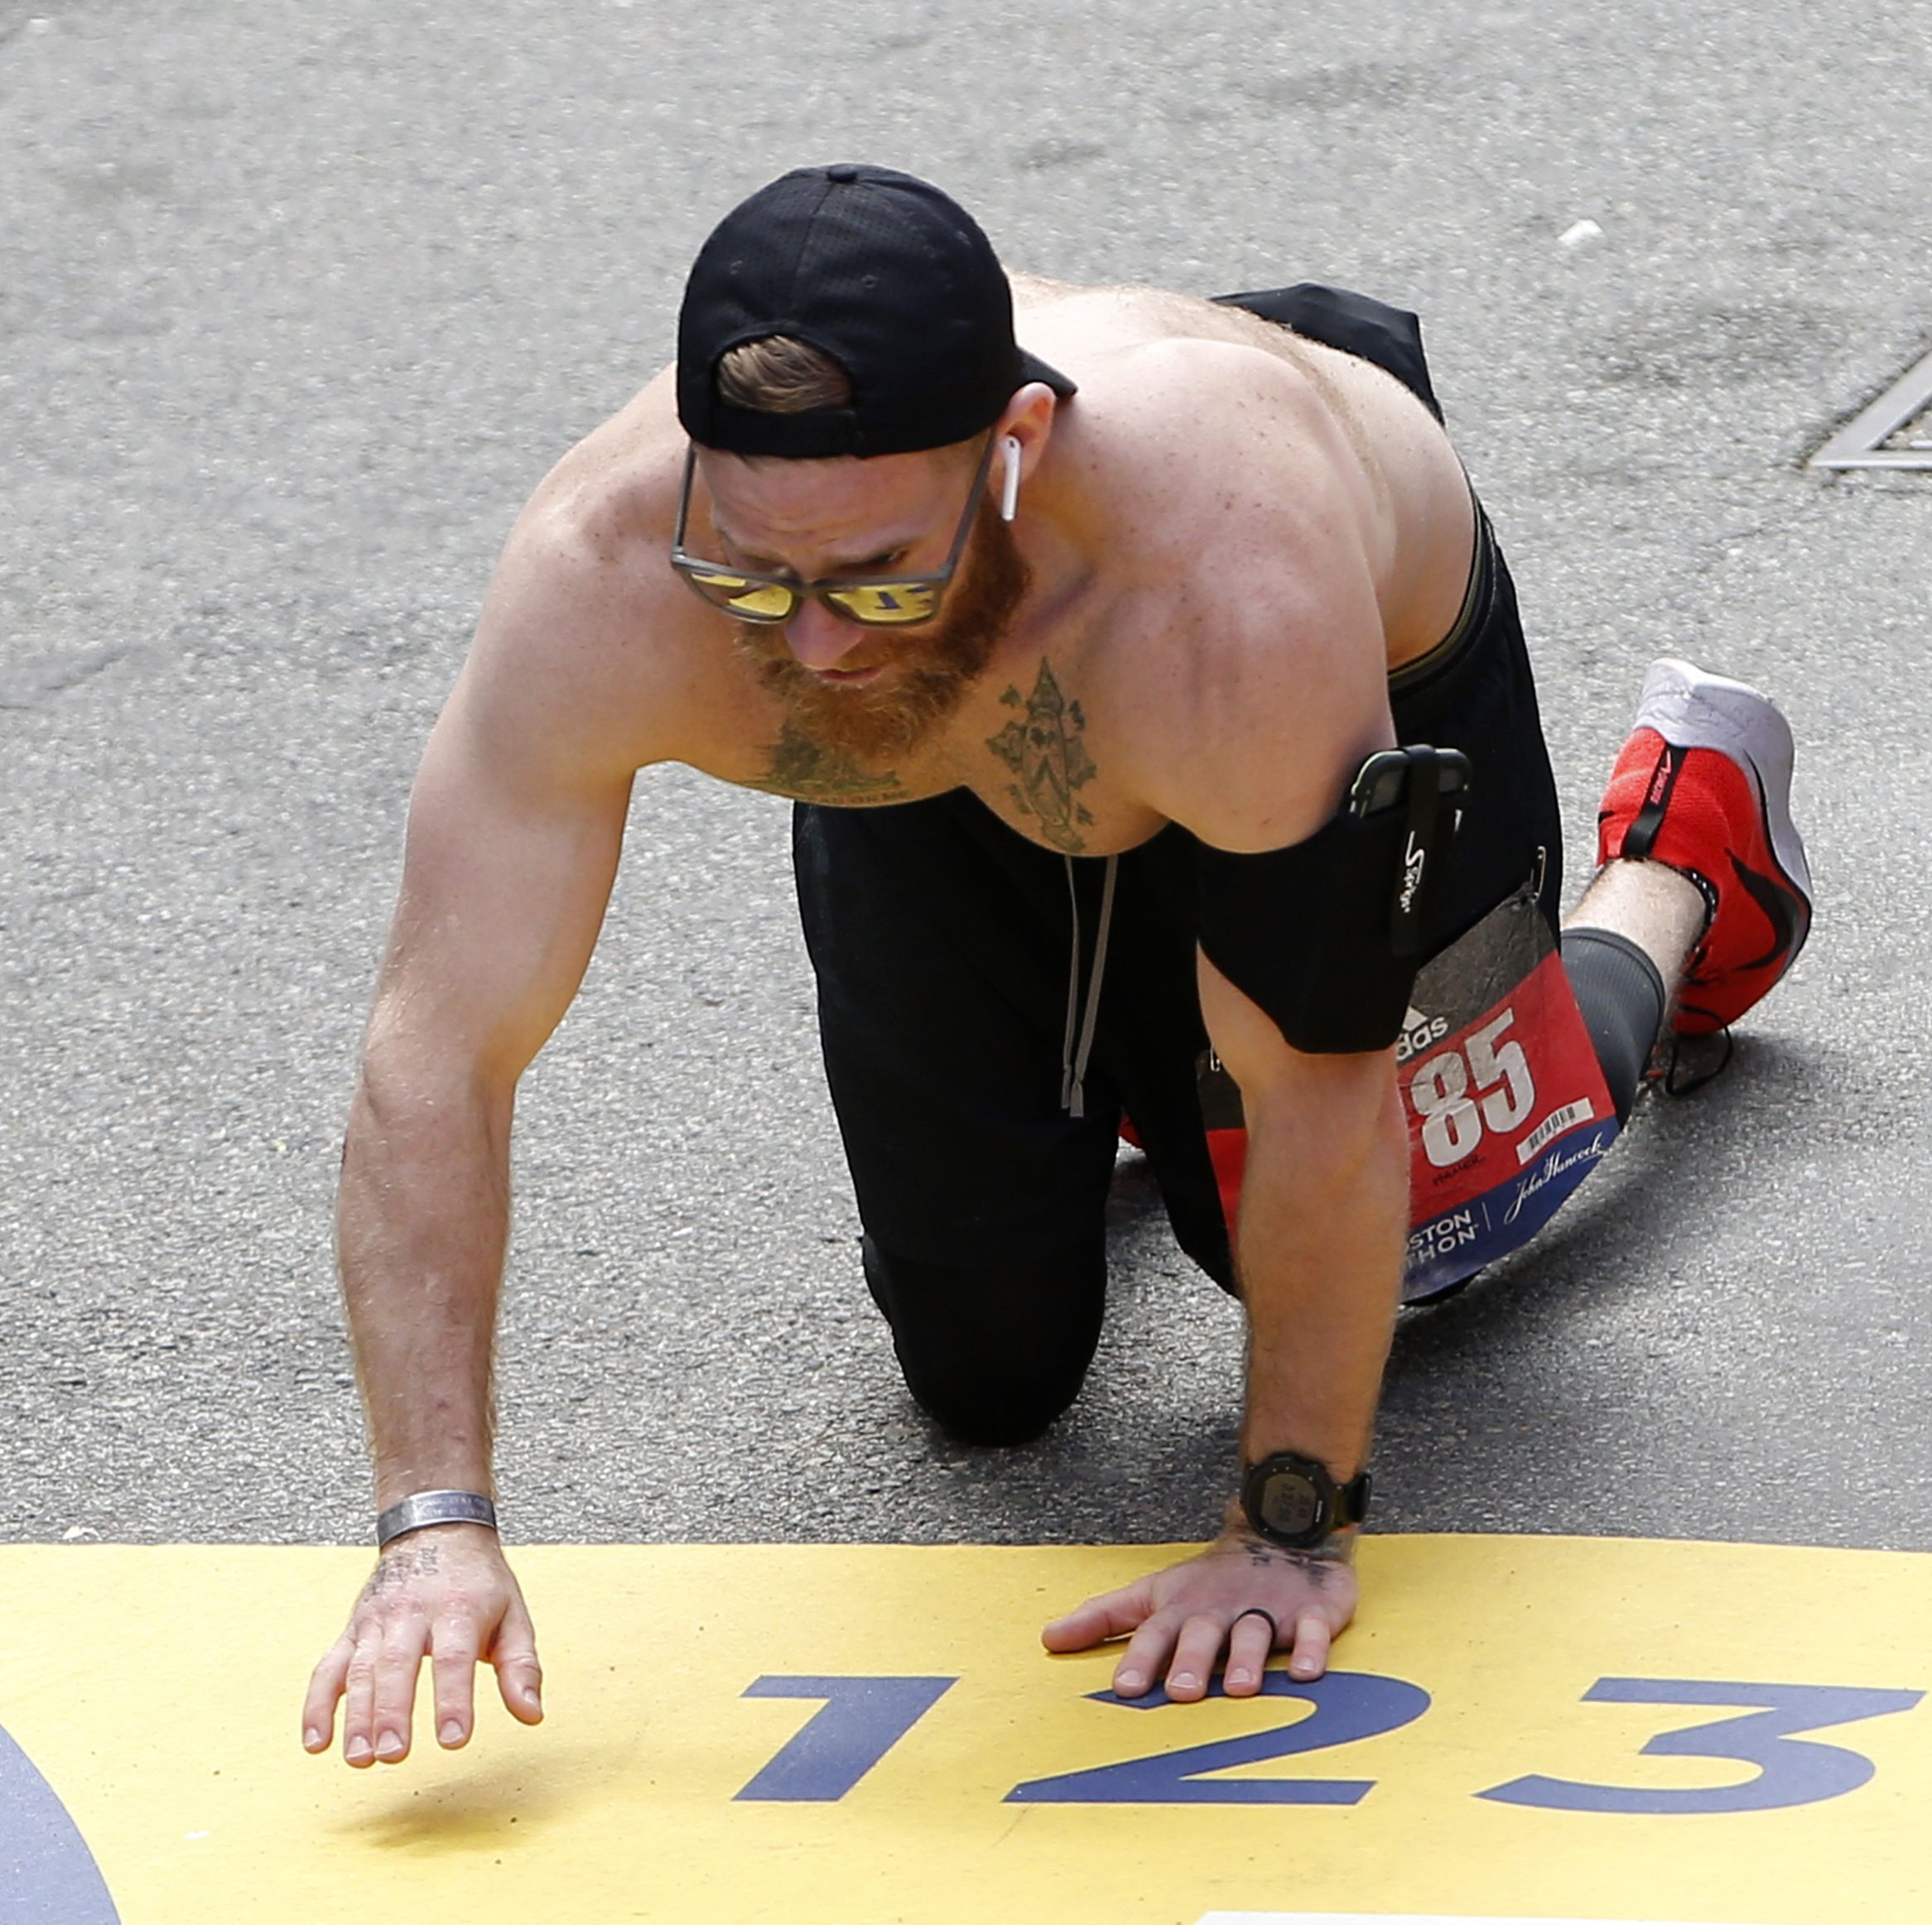 The Inspiring Reason Behind a Former Marine's Crawl to the Boston Finish